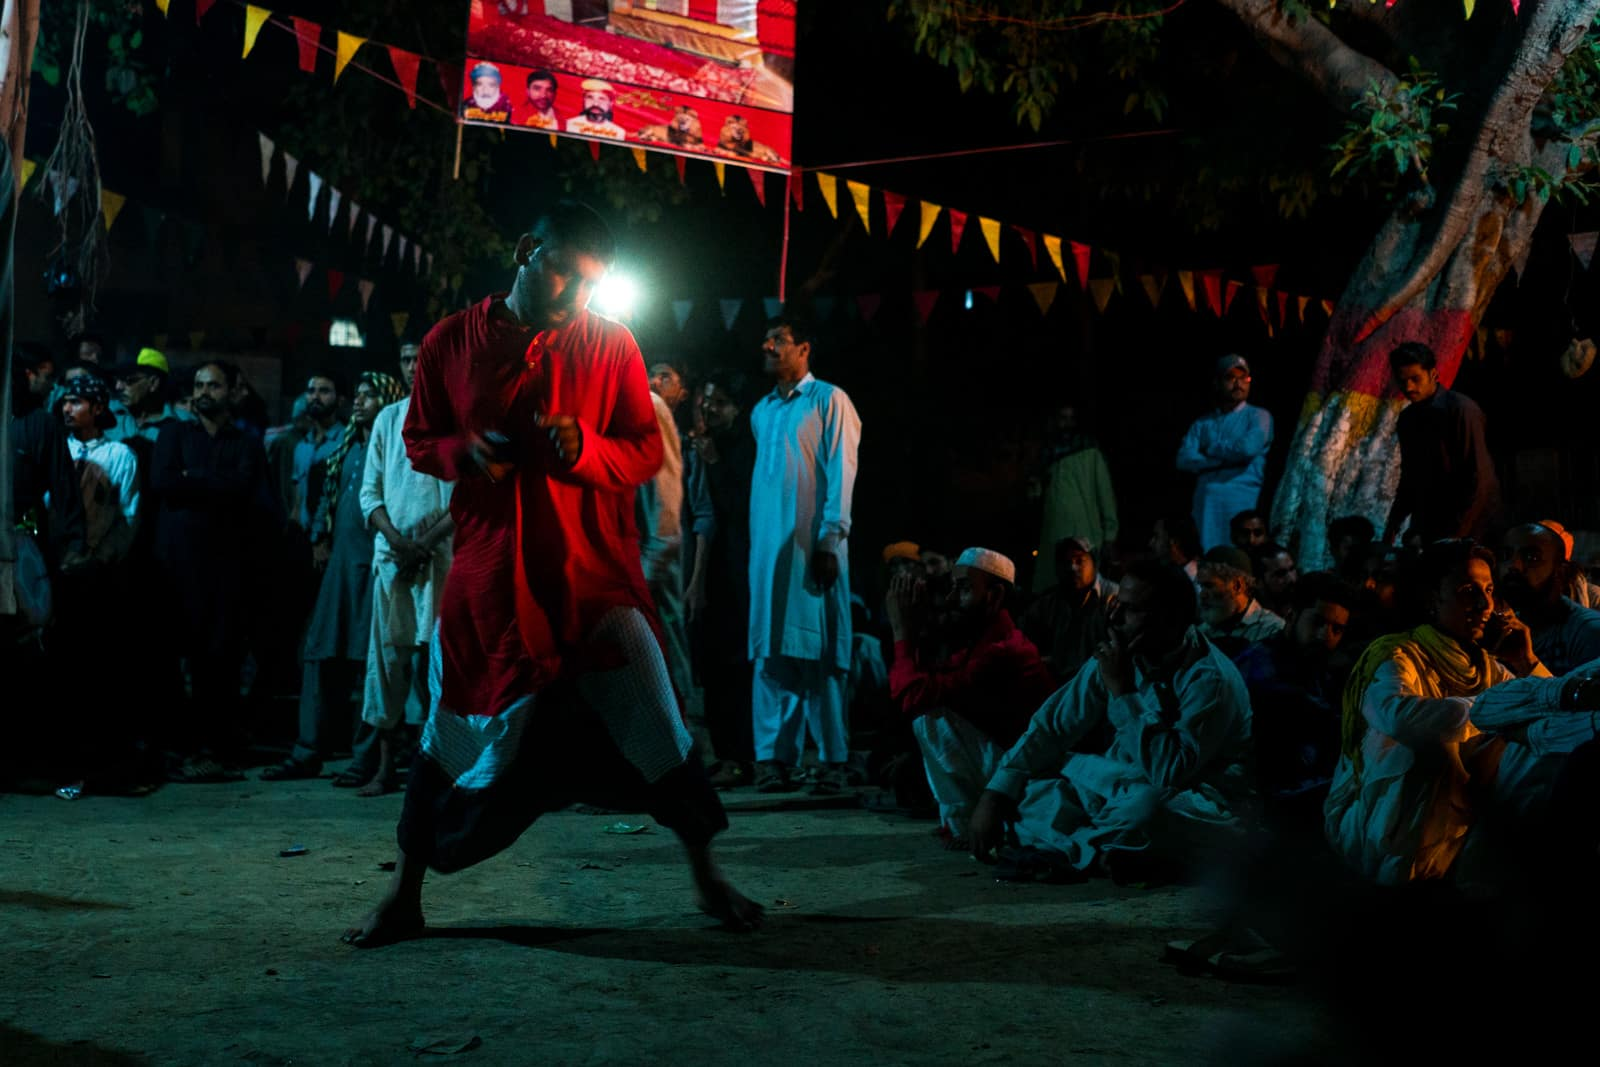 Sufi dhamal in Lahore, Pakistan - Man dancing at Madhu Lal Hussain shrine on Thursday - Lost With Purpose travel blog